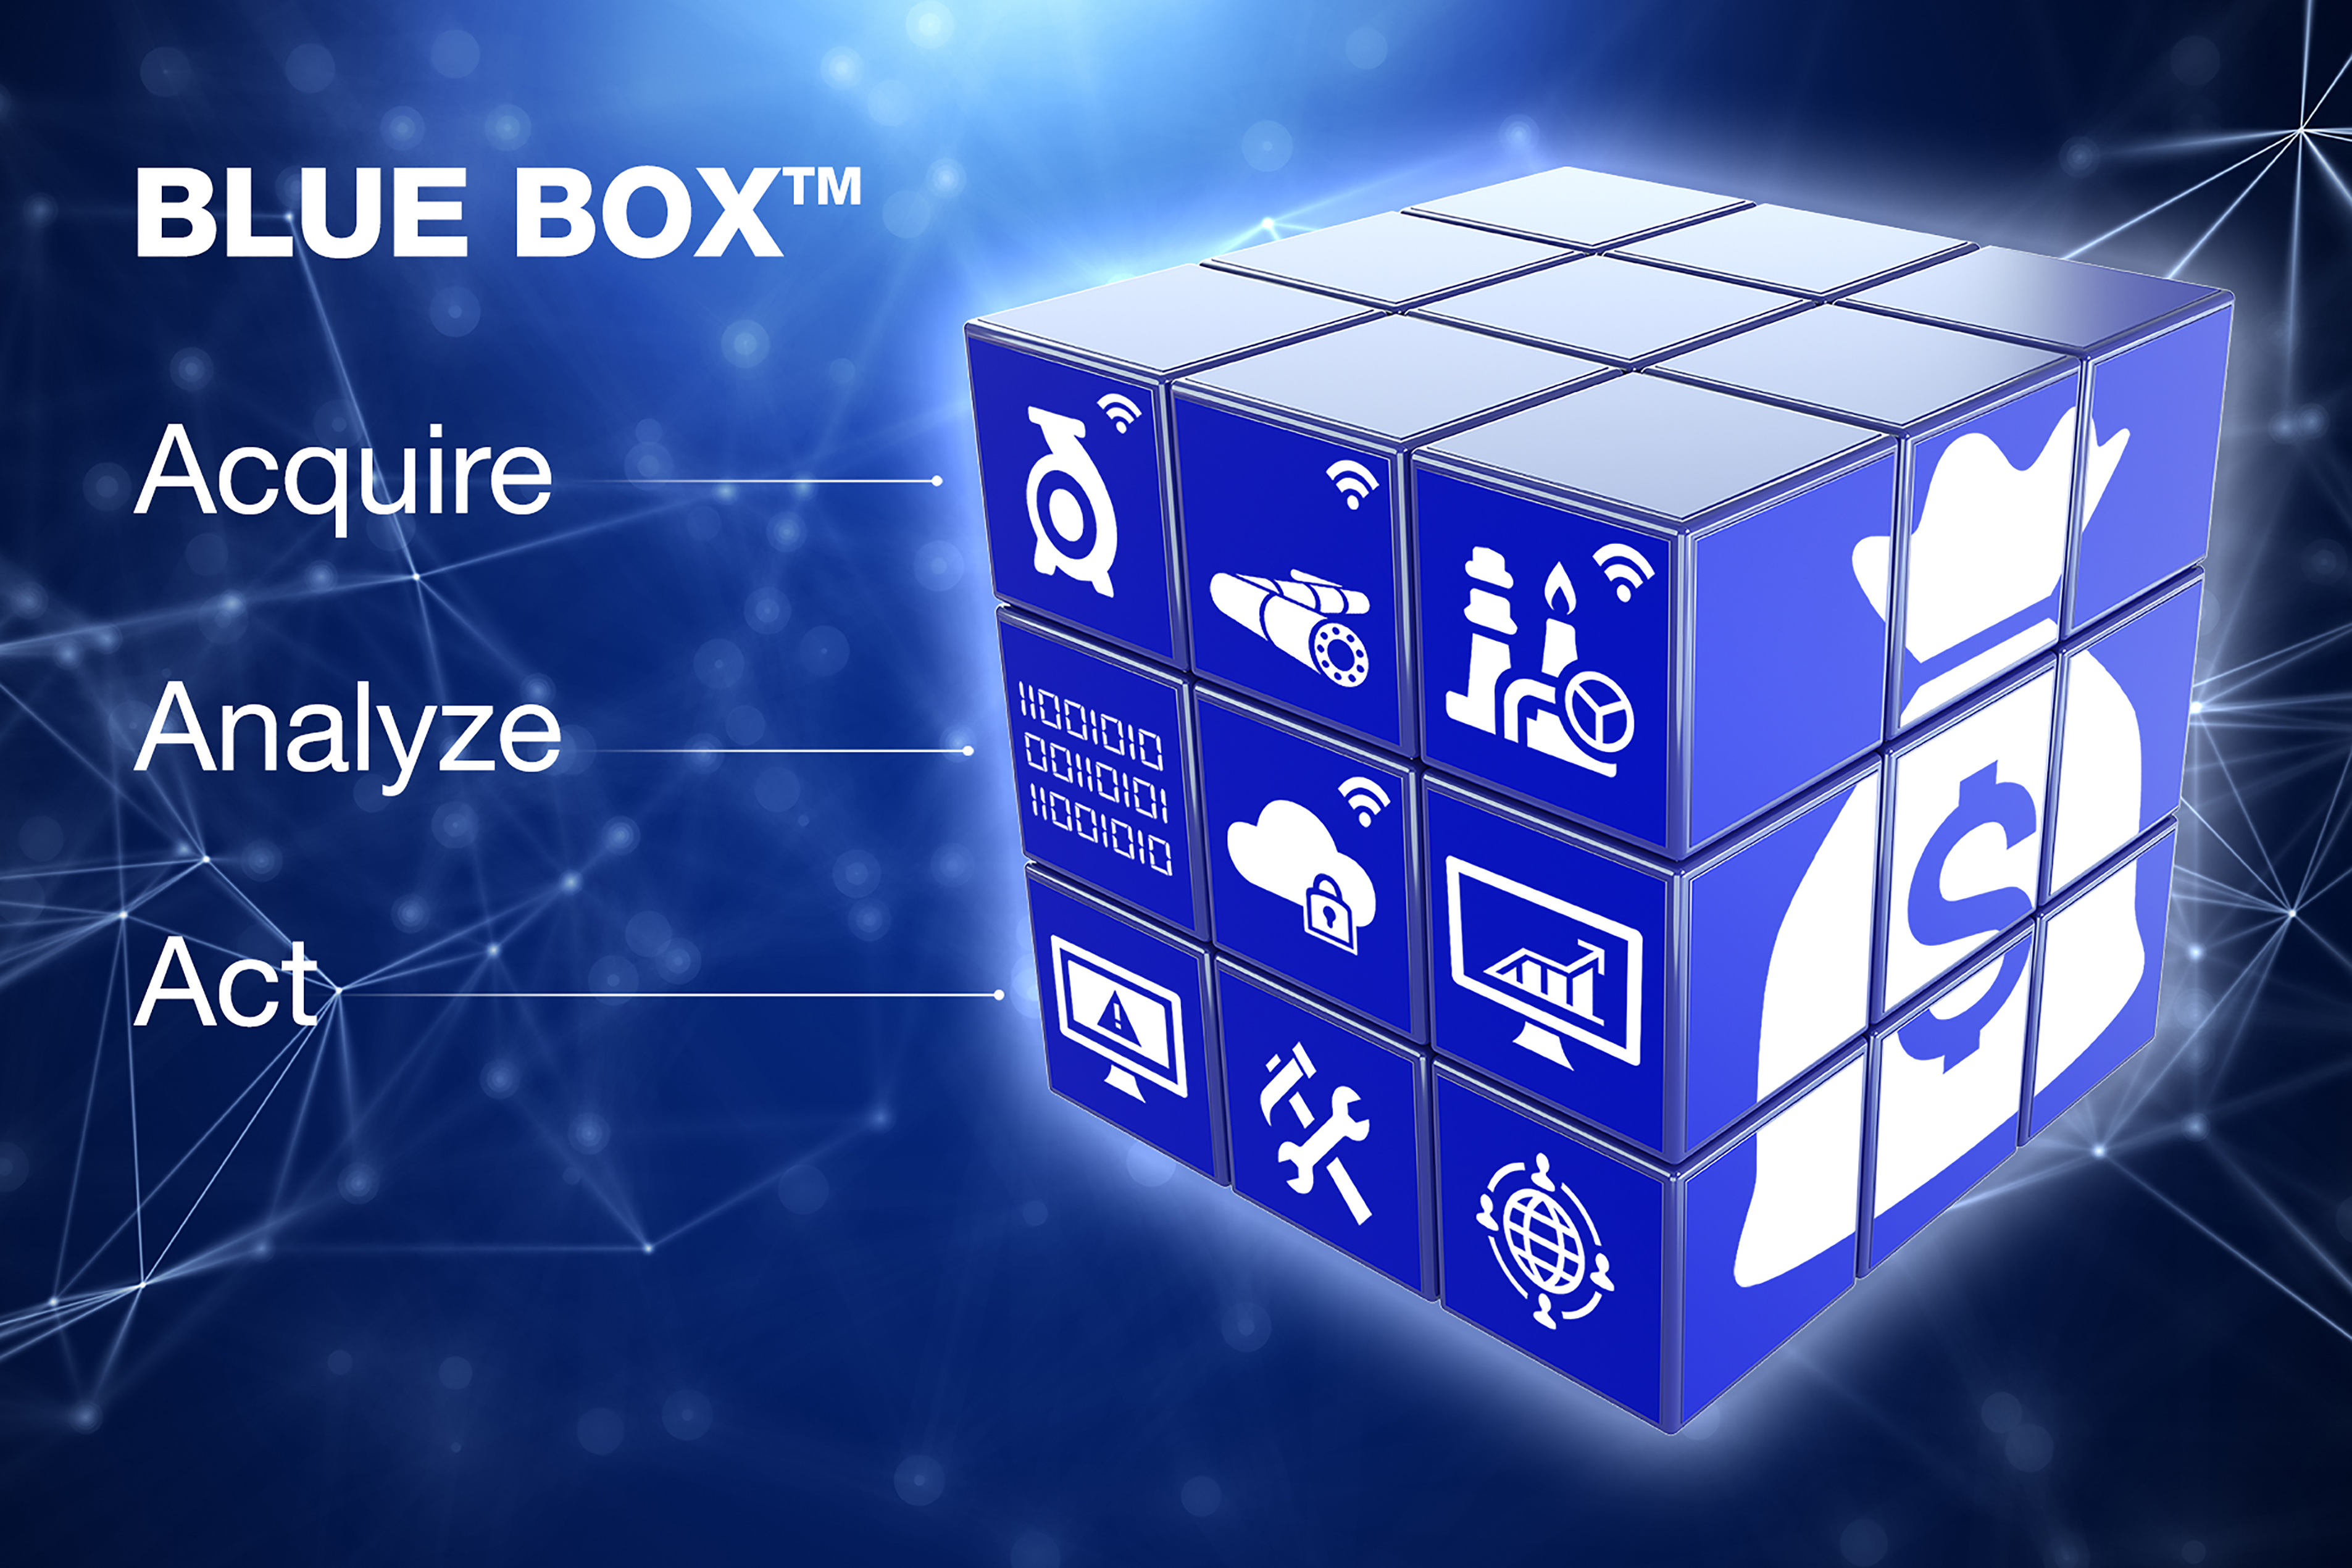 Sulzer's BLUE BOX shortlisted for Swiss Digital Economy Award